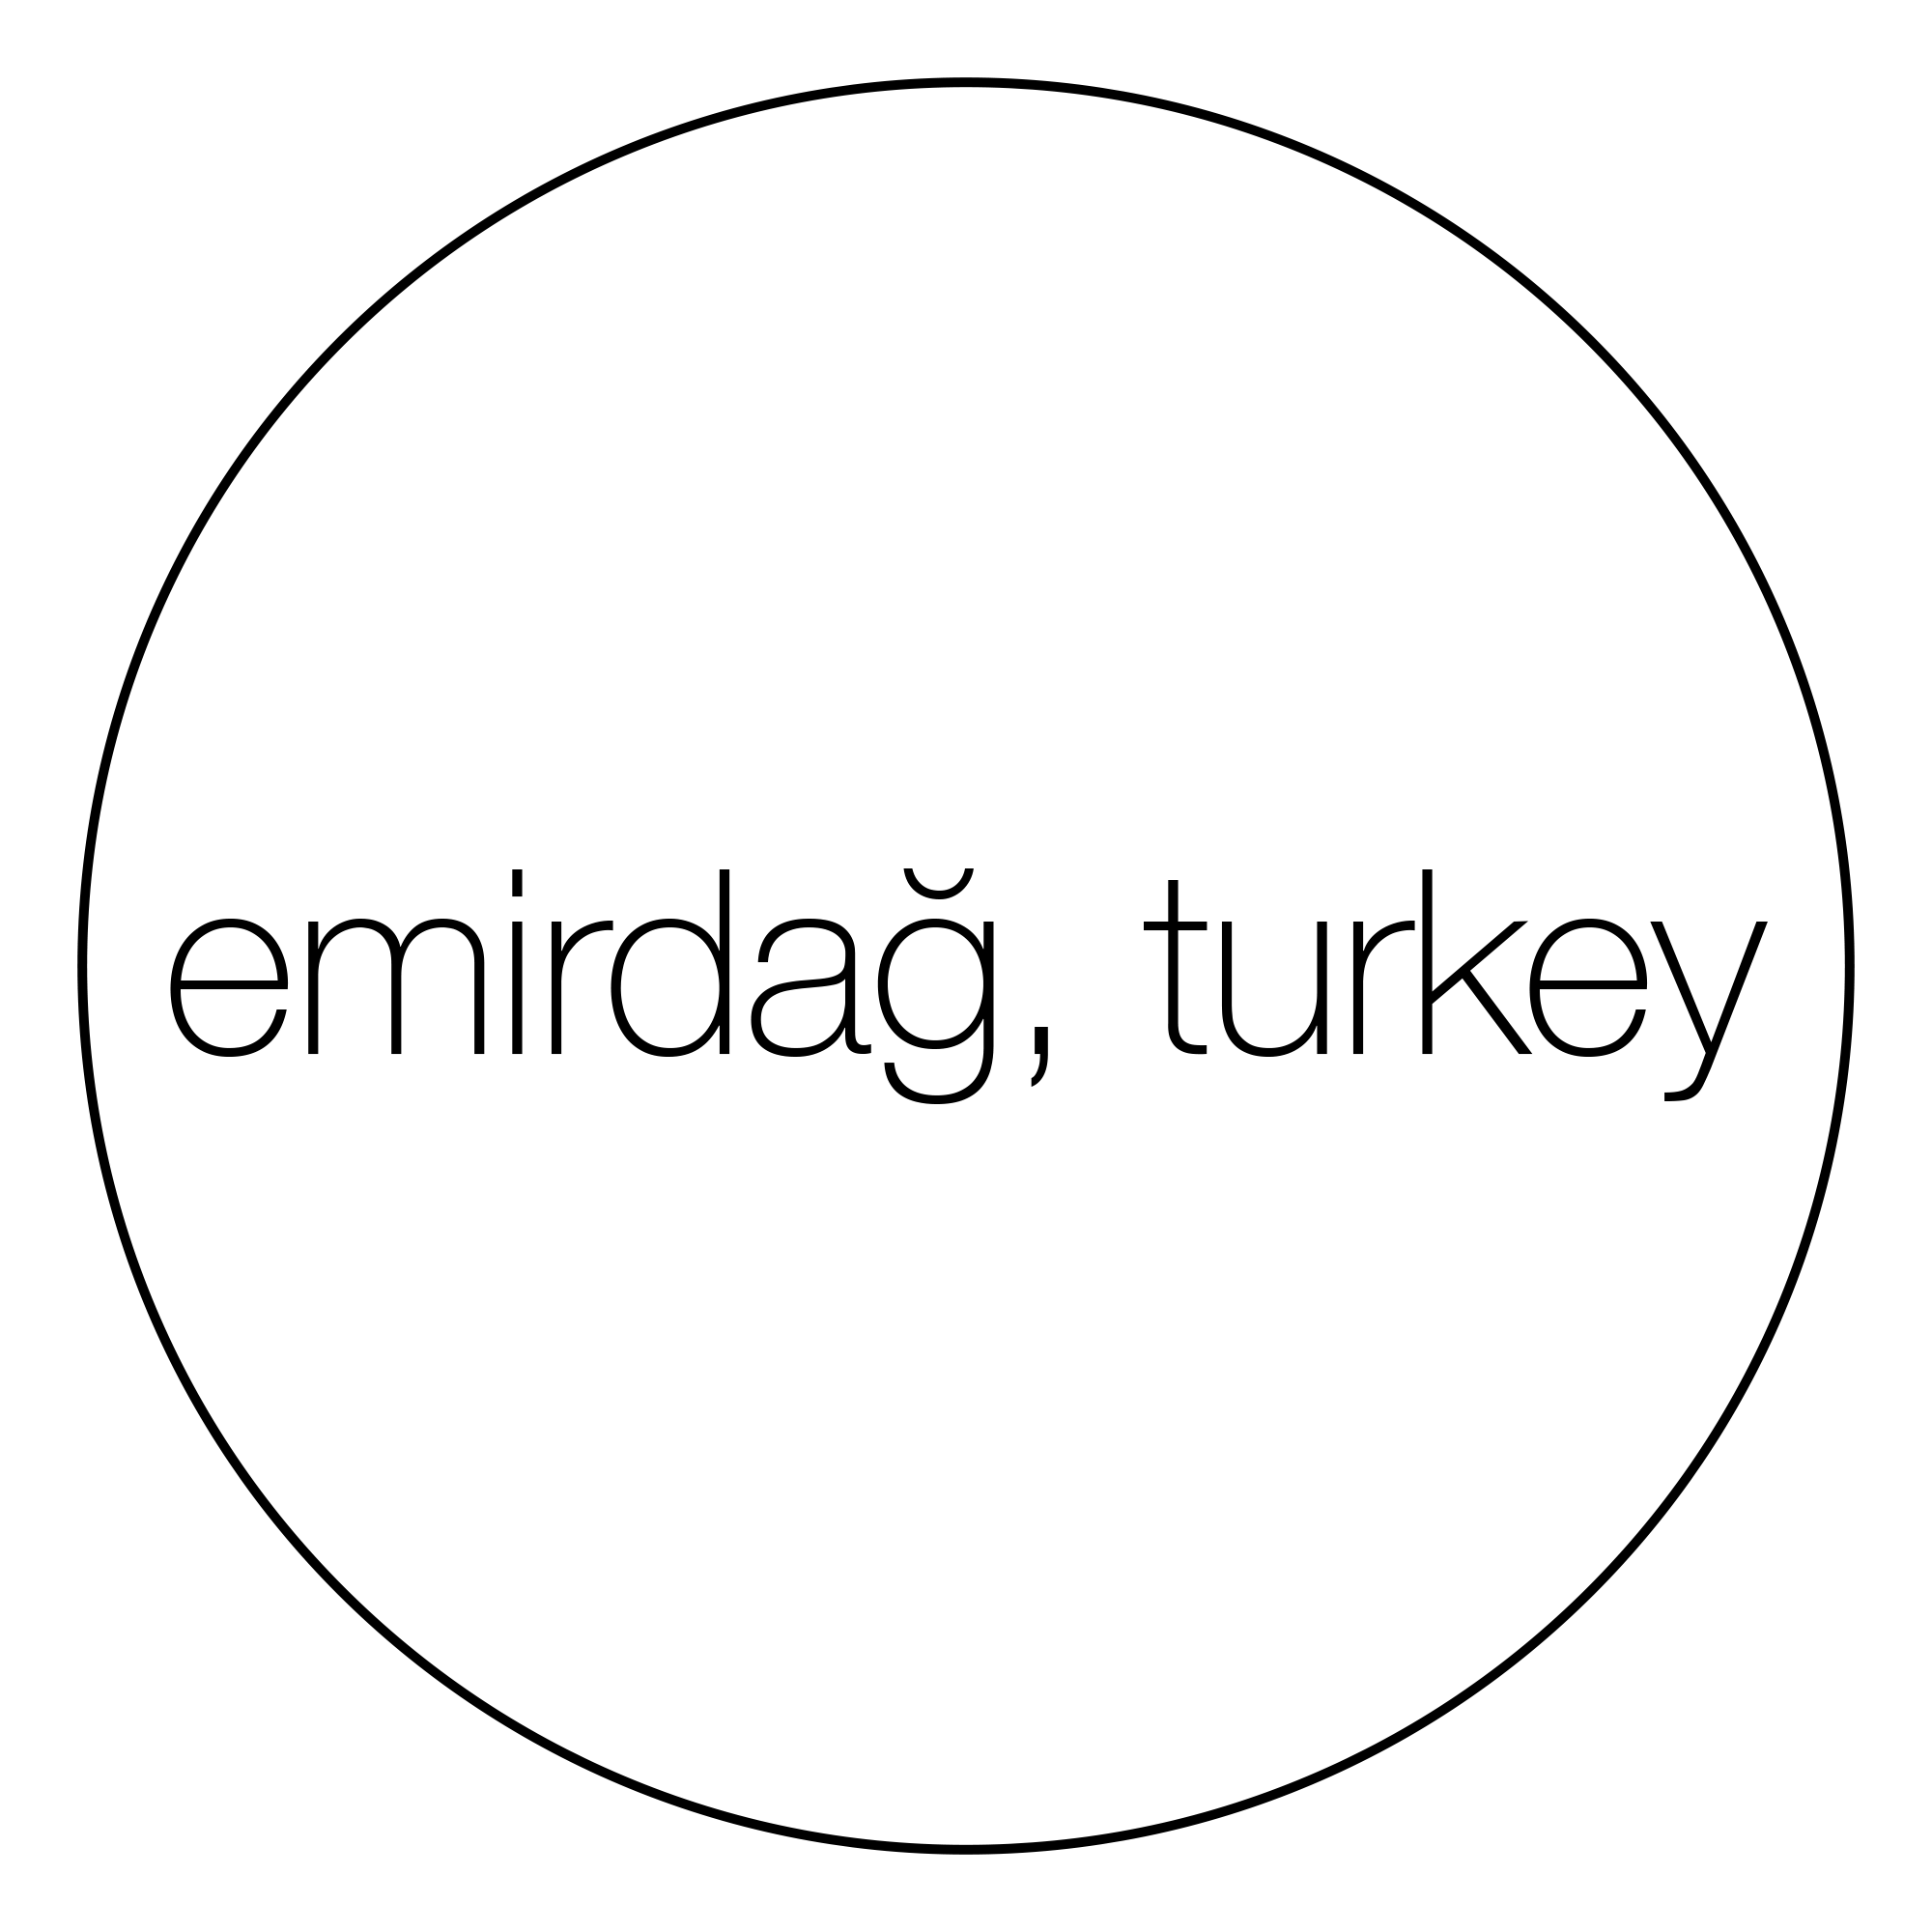 attribute-origin-emirdag-turkey